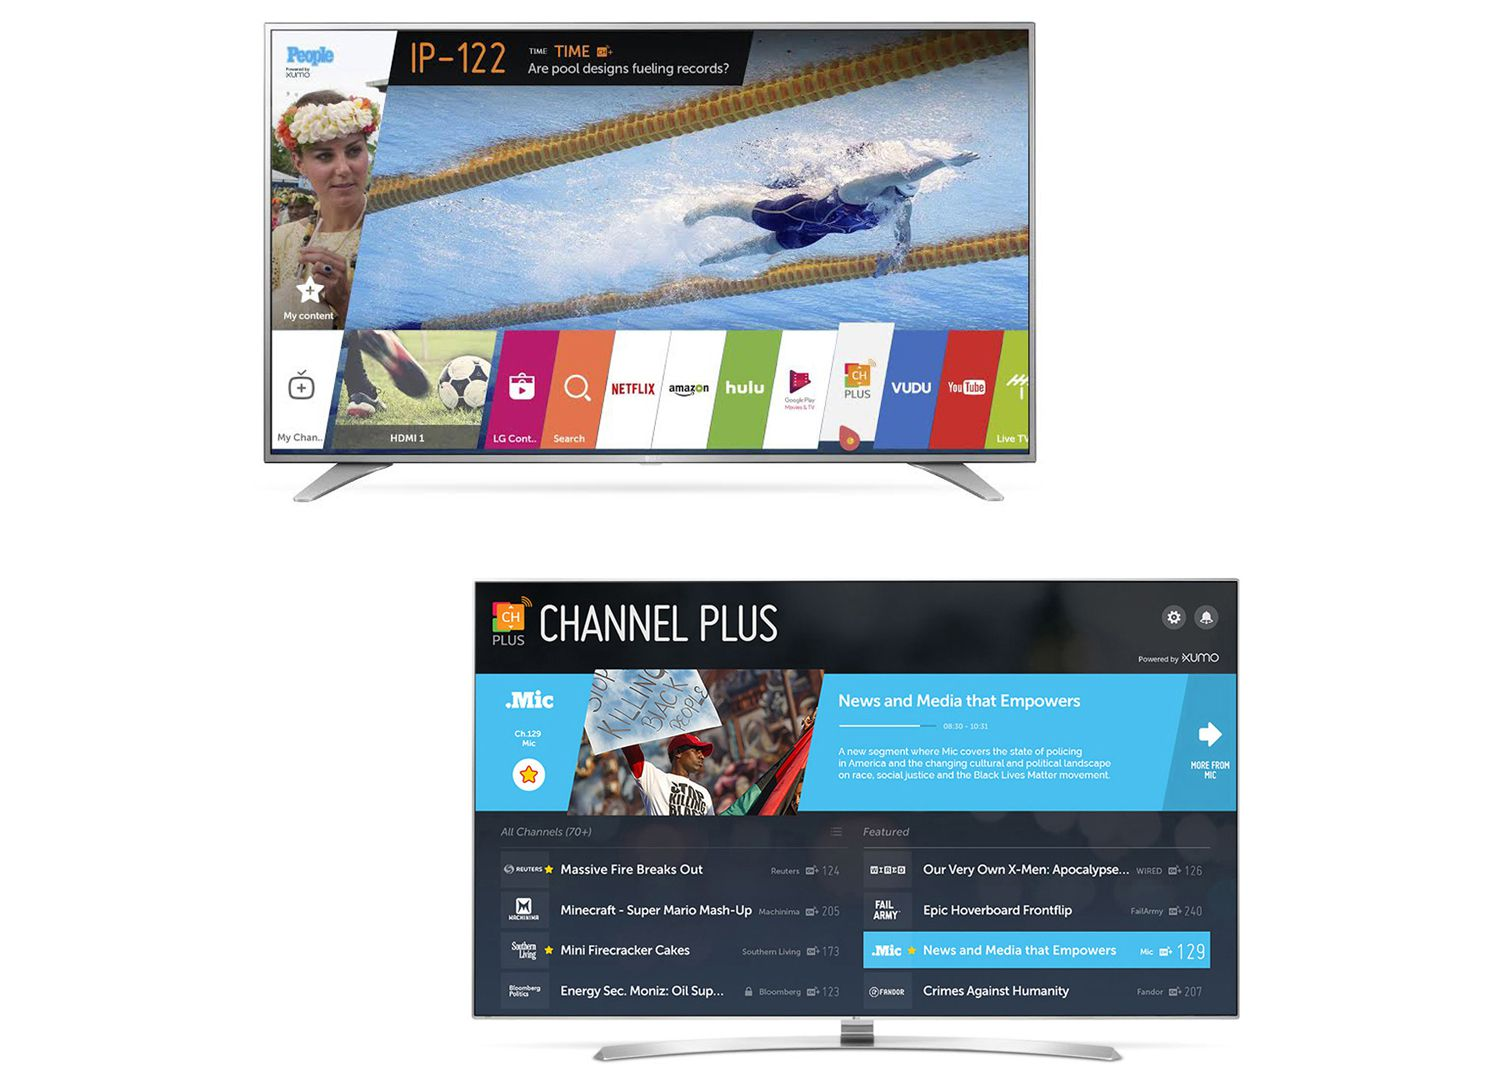 Uncategorized What Is The Best Way To Clean Flat Screen Tv how to clean a flat screen tv lg offers up channel plus for its smart tvs